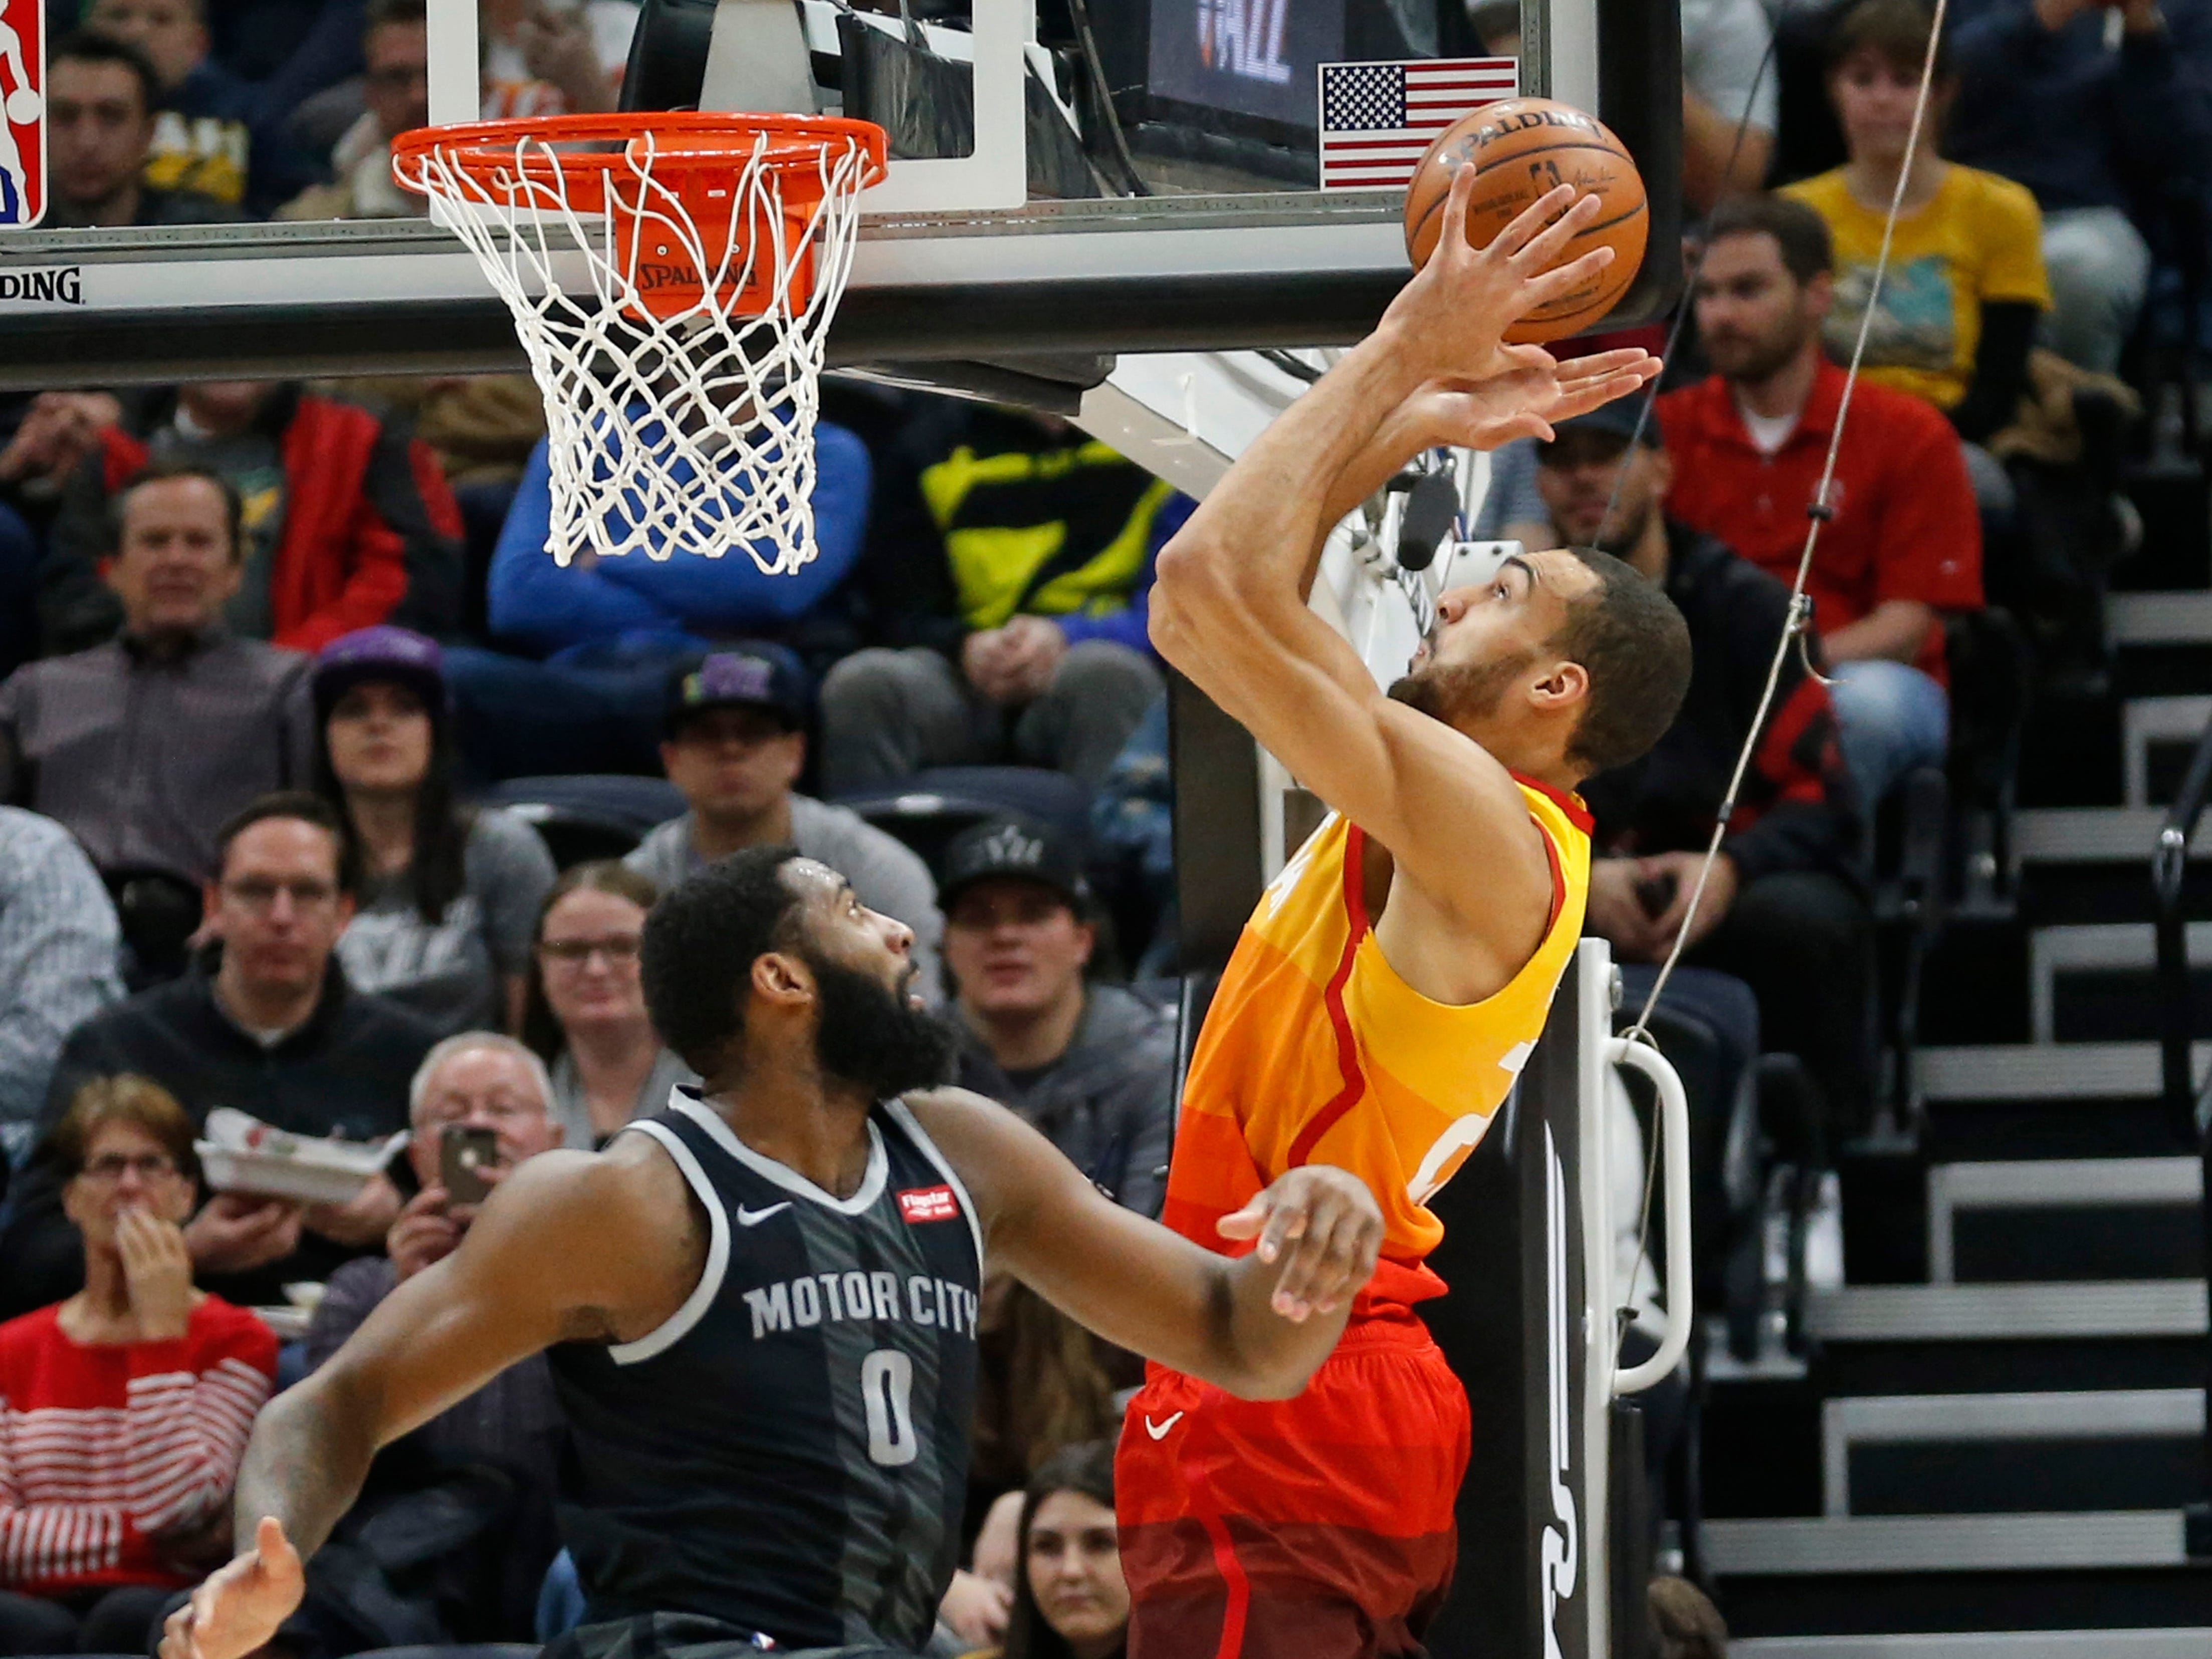 Utah Jazz' Rudy Gobert reaches for a pass against Detroit Pistons' Andre Drummond in the first half Monday, Jan. 14, 2019, in Salt Lake City.